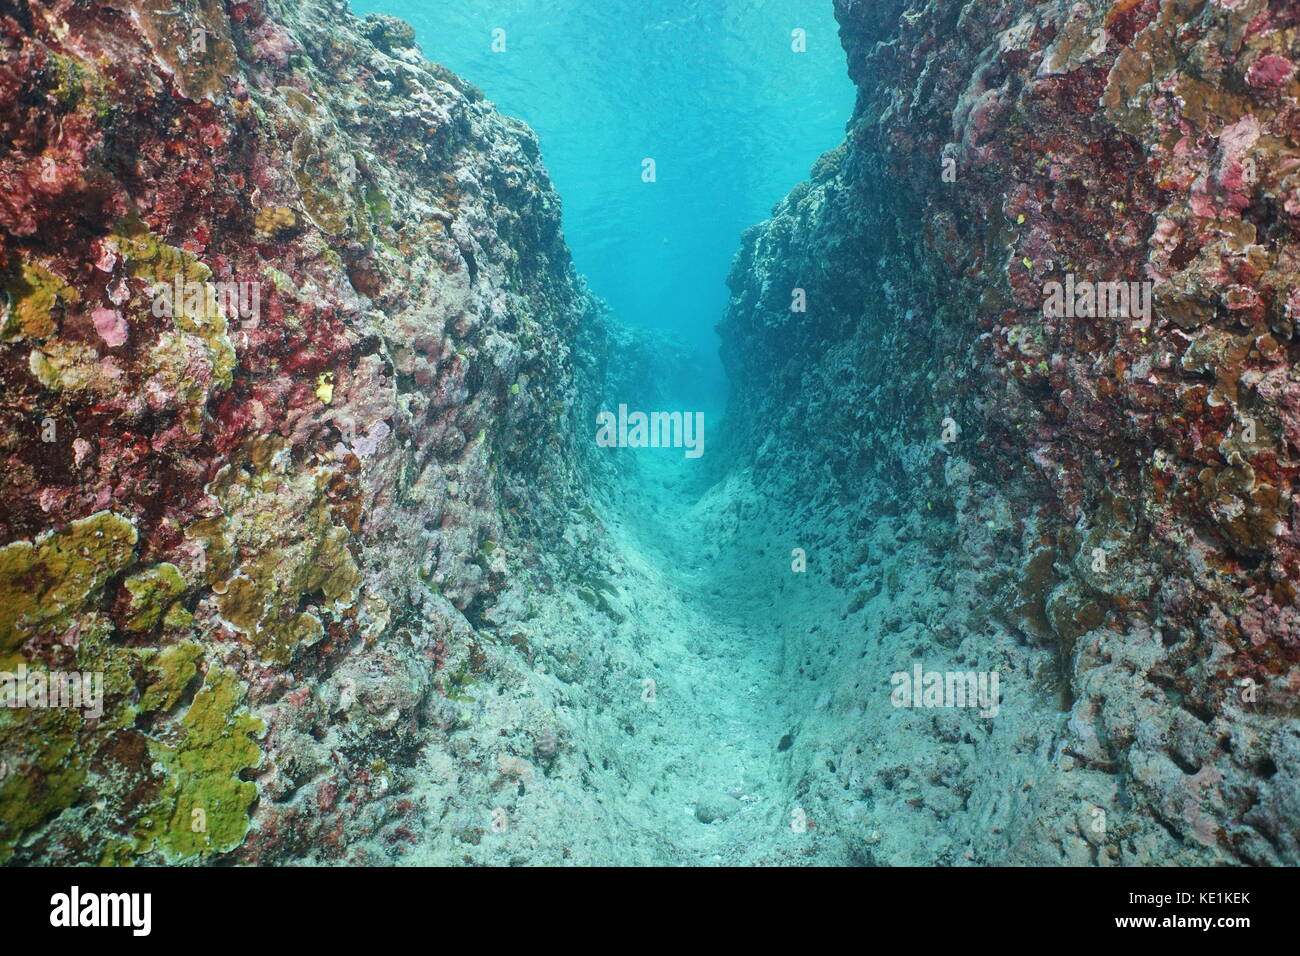 Underwater trench into the outer reef due to natural erosion, Huahine island, south Pacific ocean, French Polynesia, - Stock Image